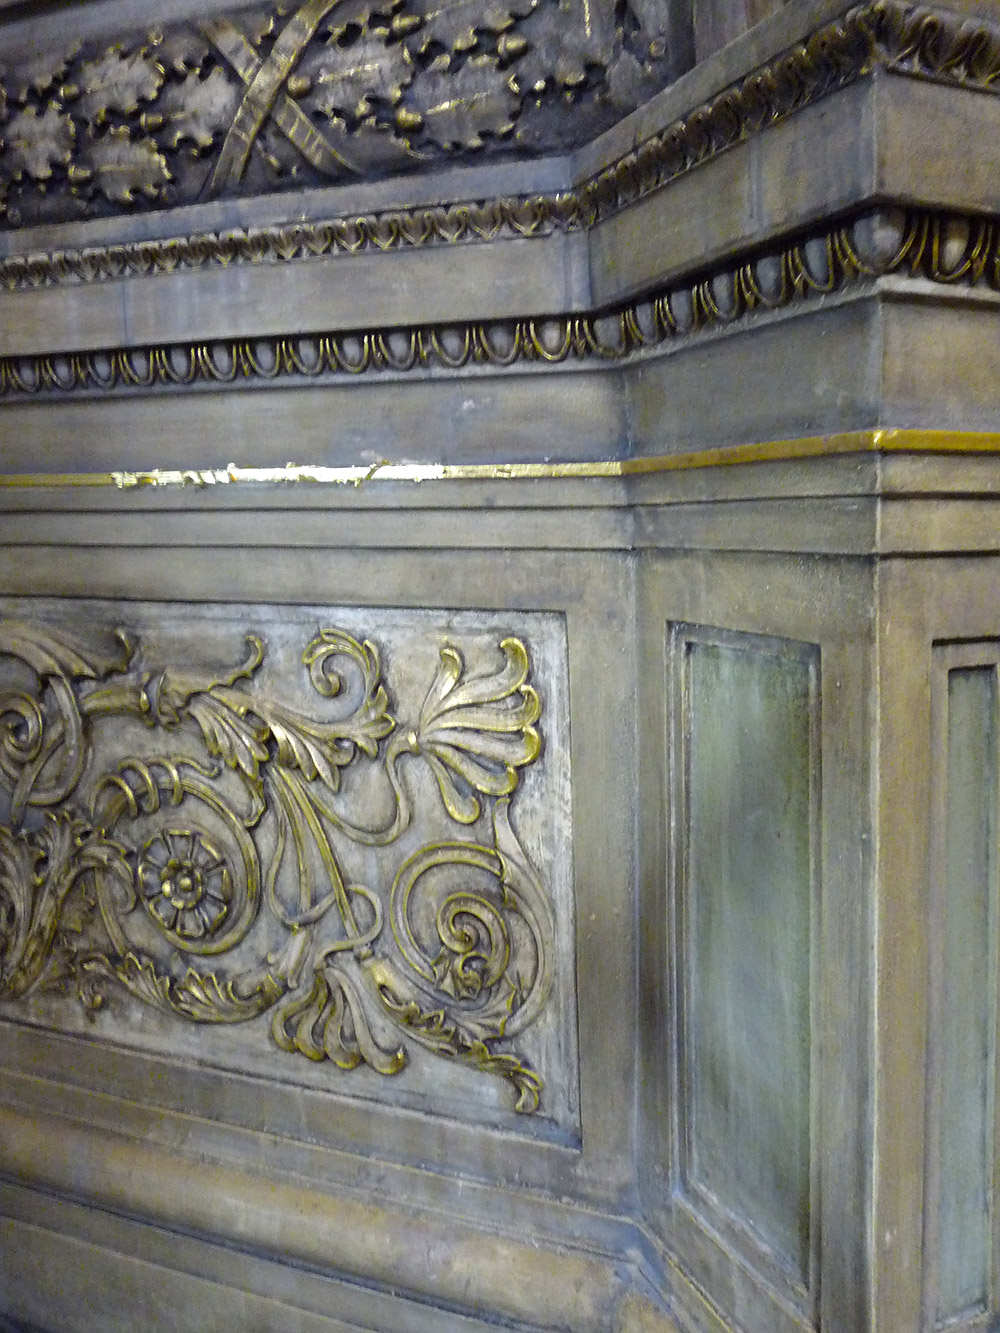 Gold leaf is applied to damaged areas of gilt plaster at Chicago's Blackstone Memorial Library